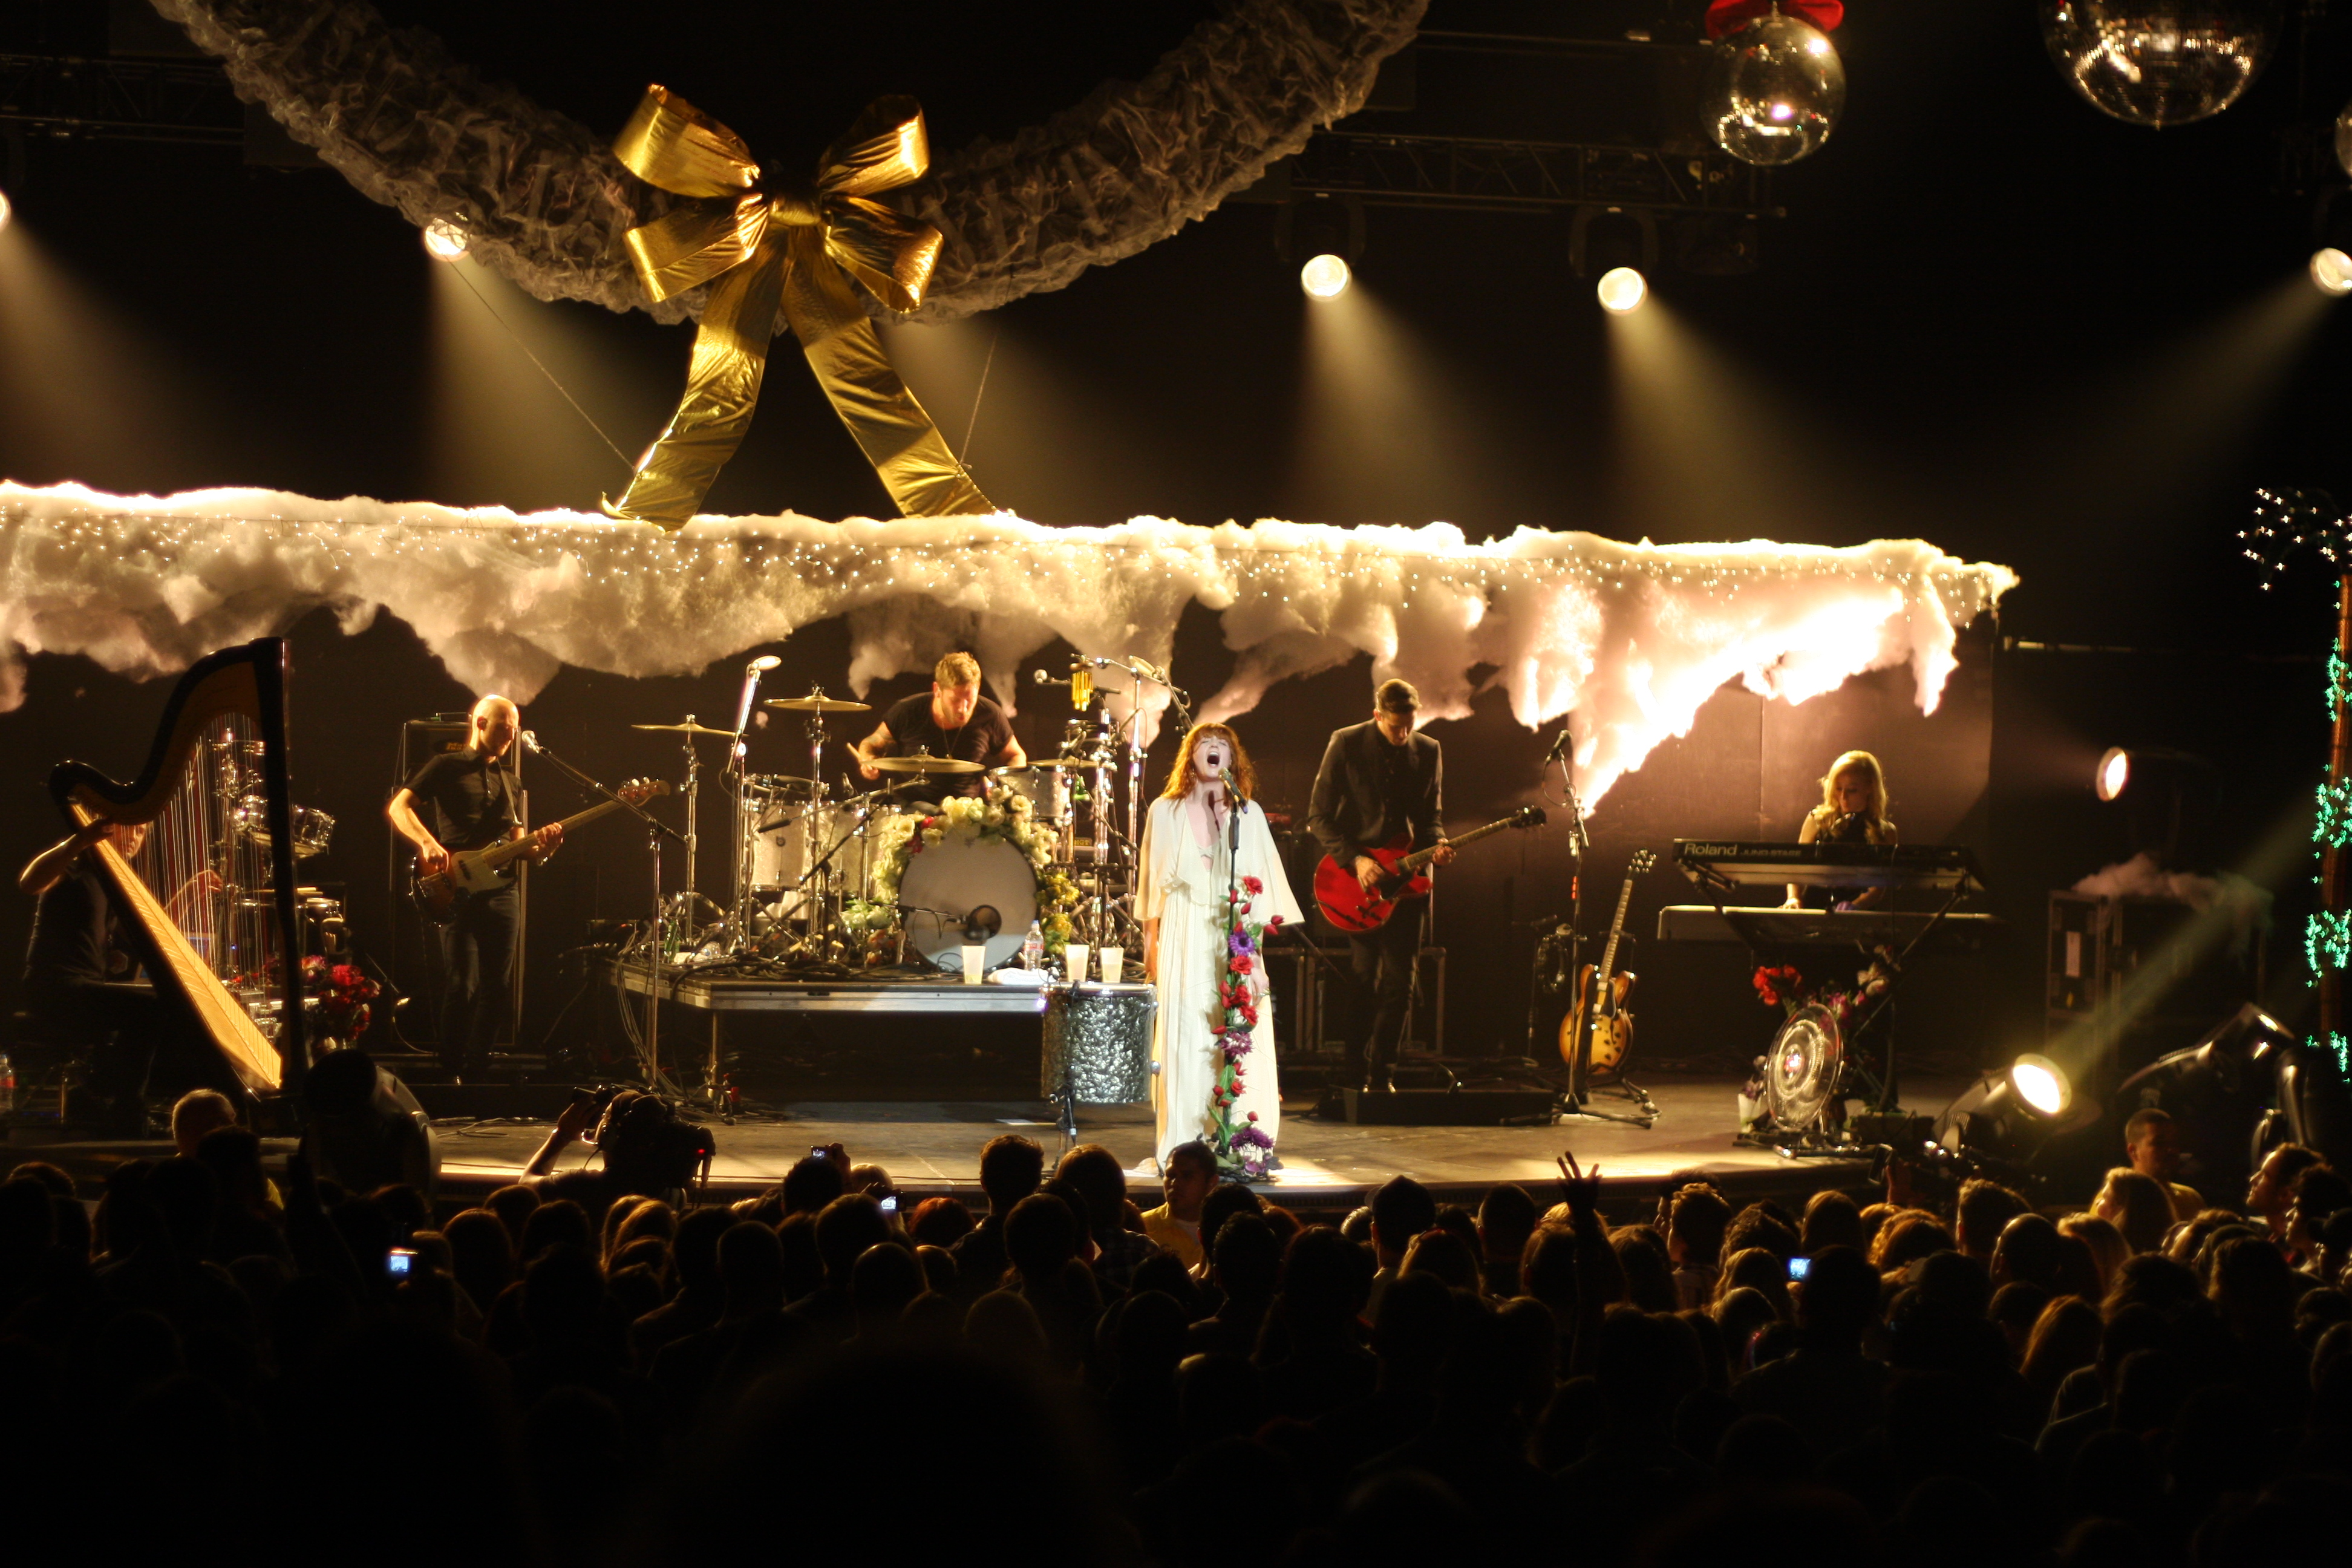 Kroq Almost Acoustic Christmas.File Kroq Almost Acoustic Xmas Florence And The Machine 12